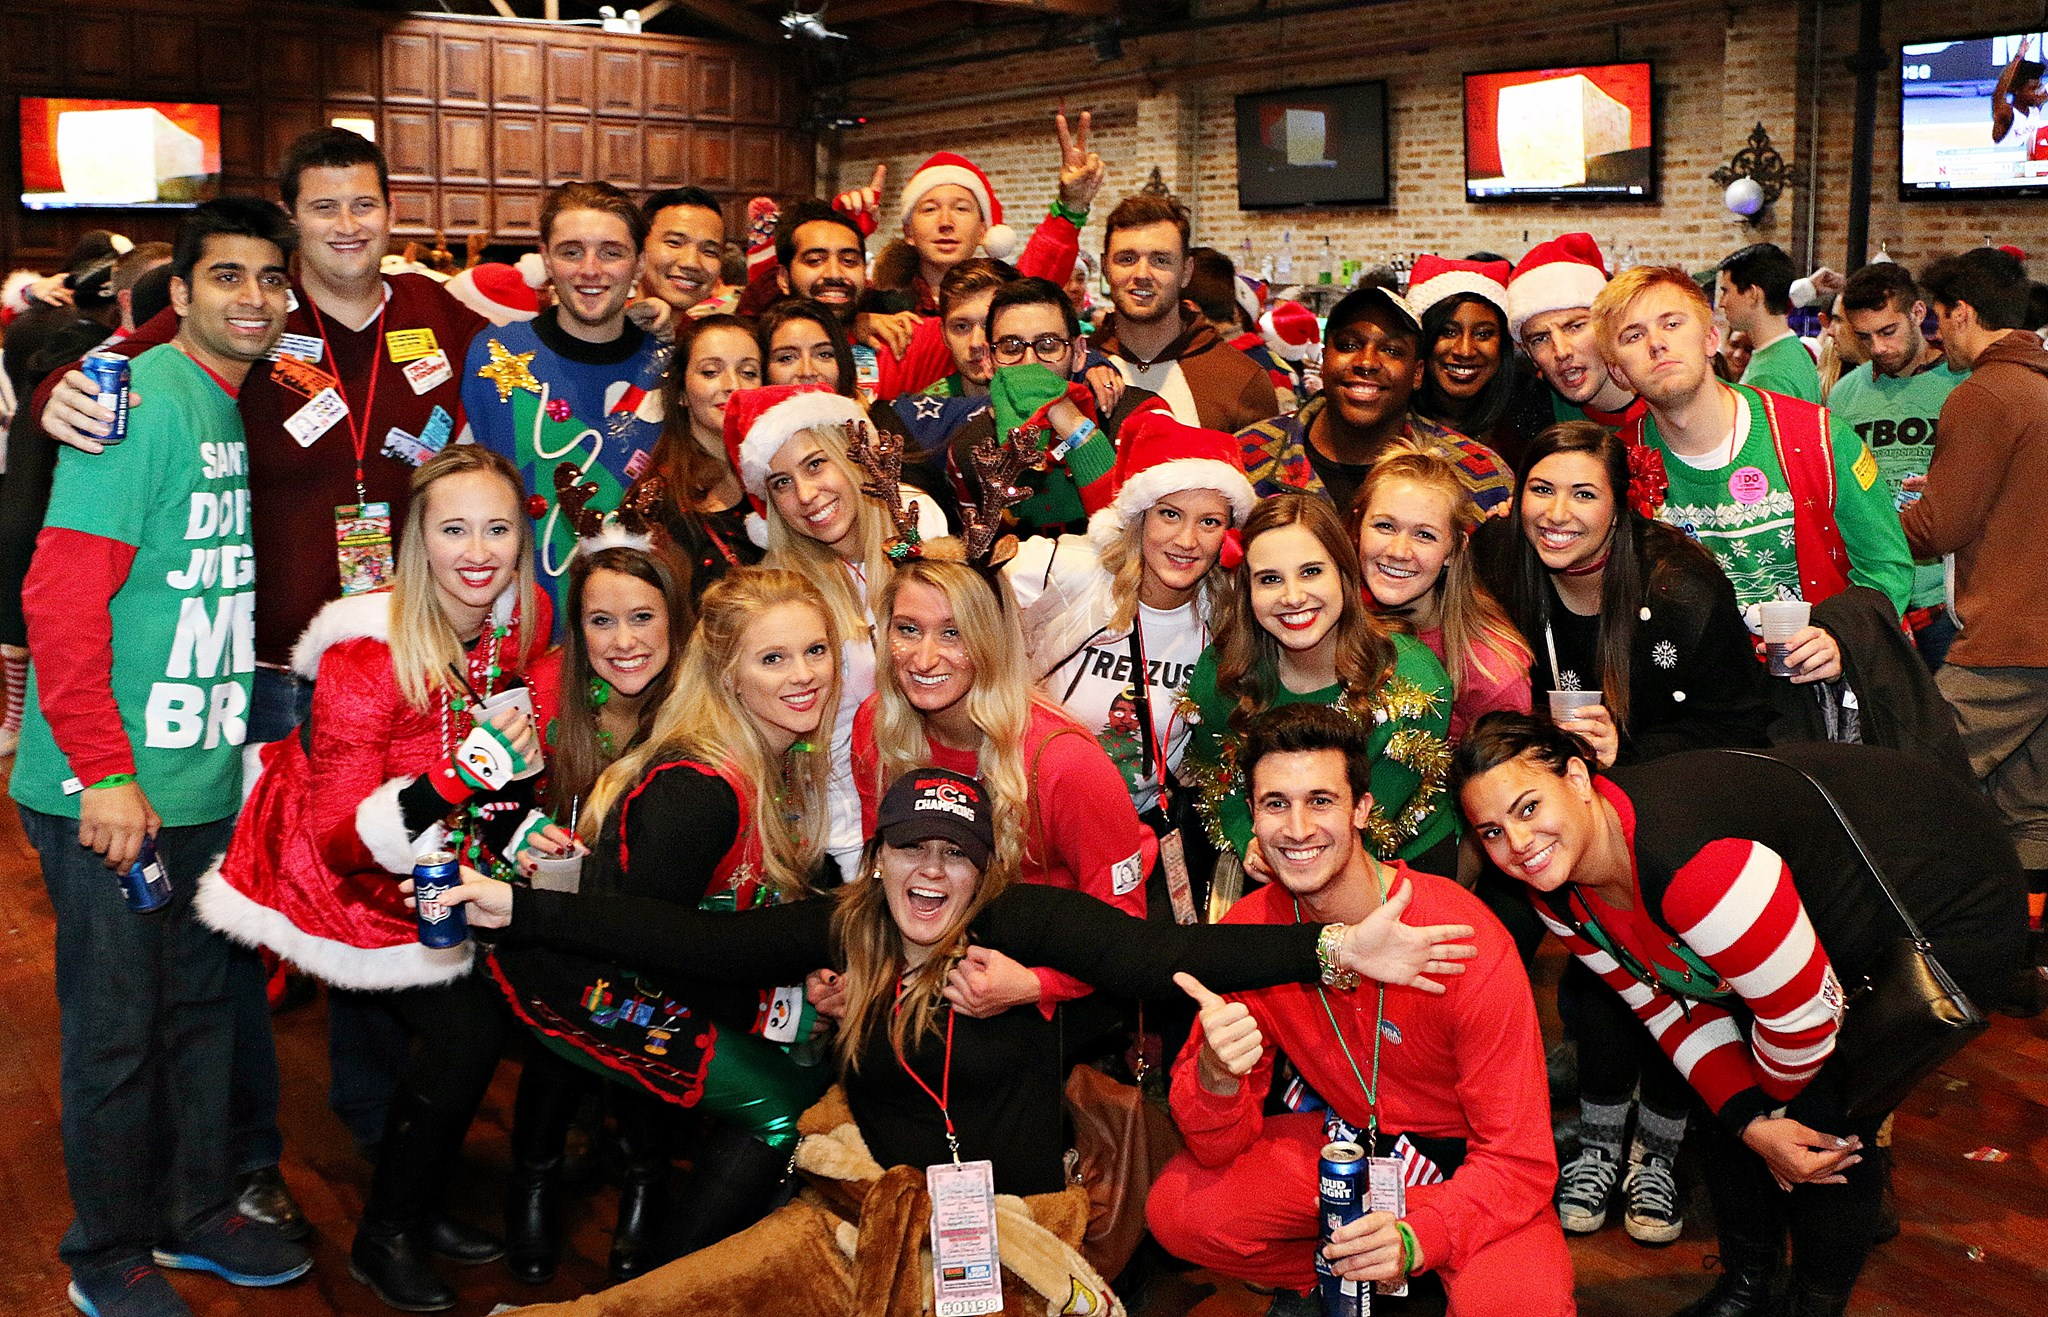 tboxbarcrawl_2016_fun_chicago_bar_crawl_christmas_wrigleyville_wrigley_friends_squad_twelve_bars_of_xmas